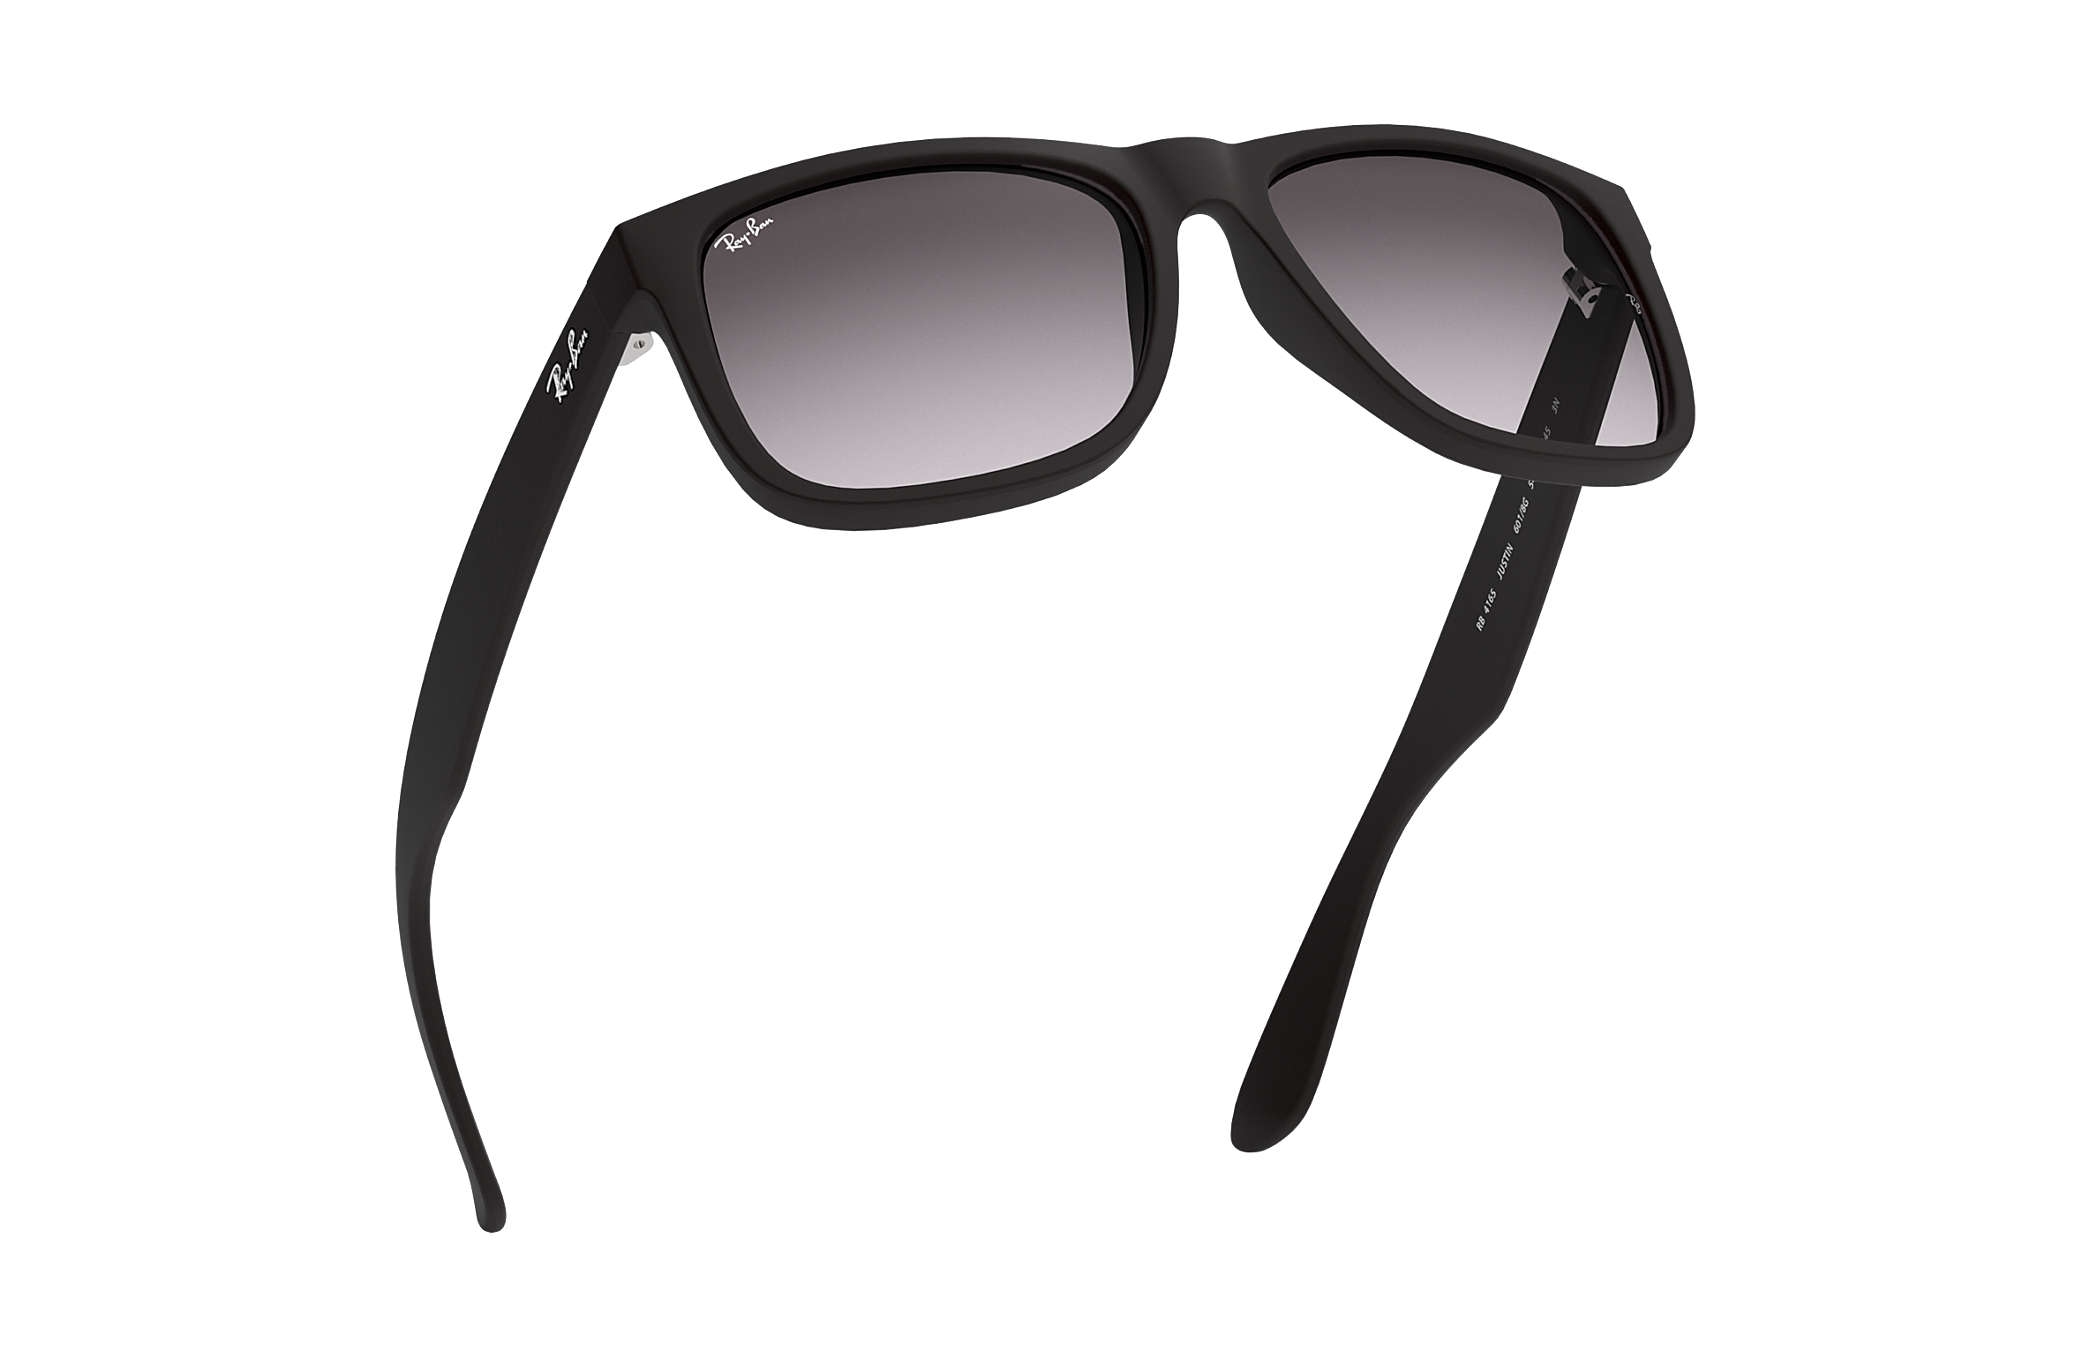 Ray-Ban Justin Classic RB4165 Black - Nylon - Grey Lenses ... 52fd025c4a